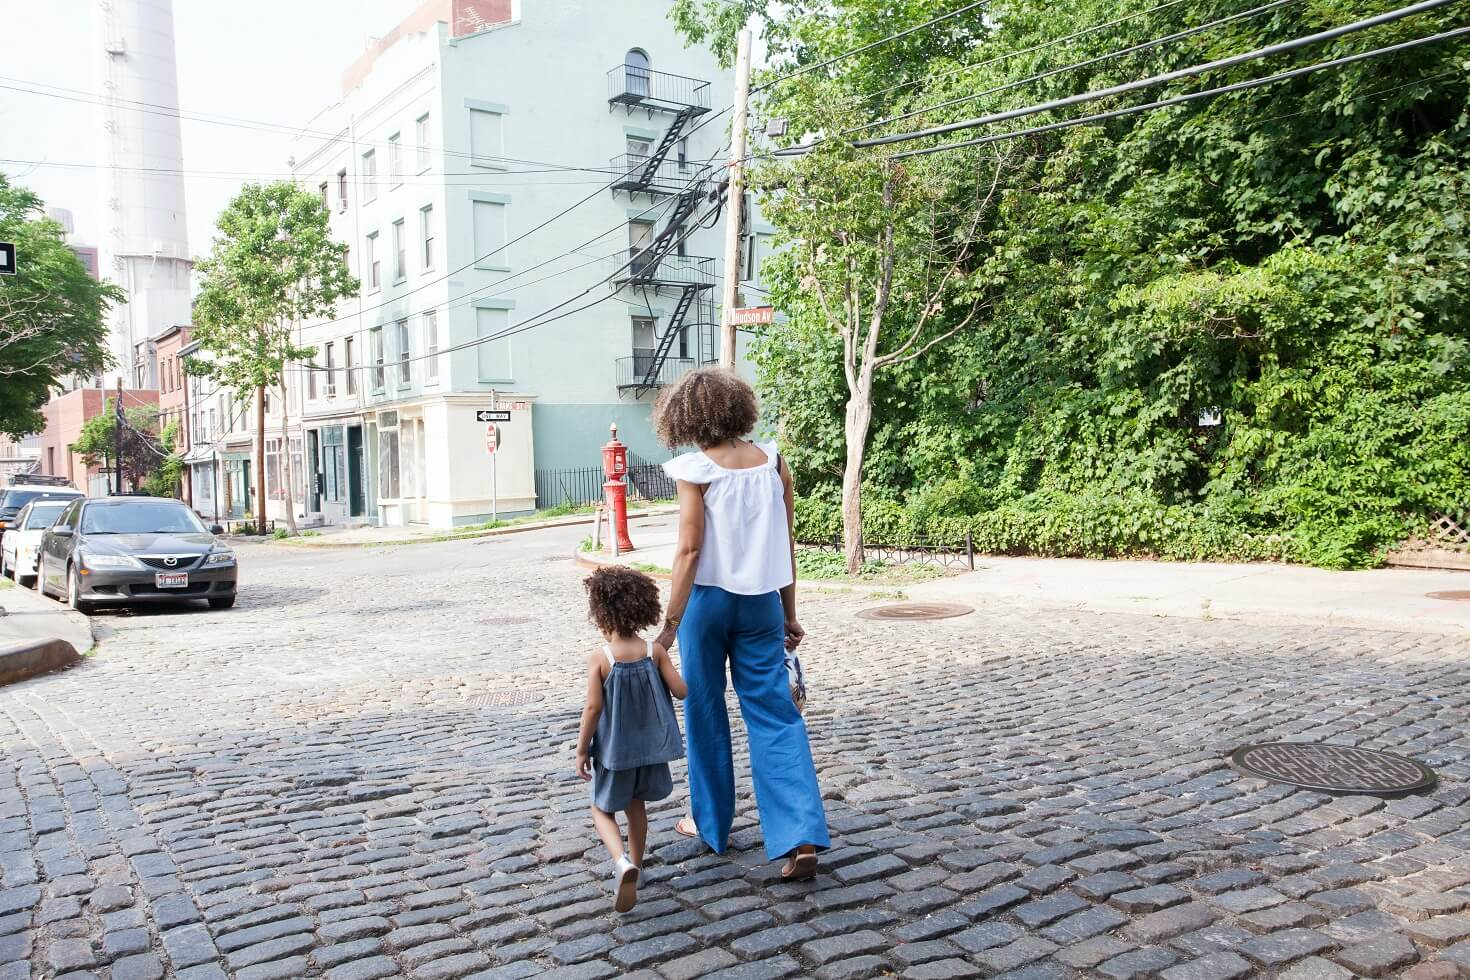 Mom and young daughter walking down the street holding hands